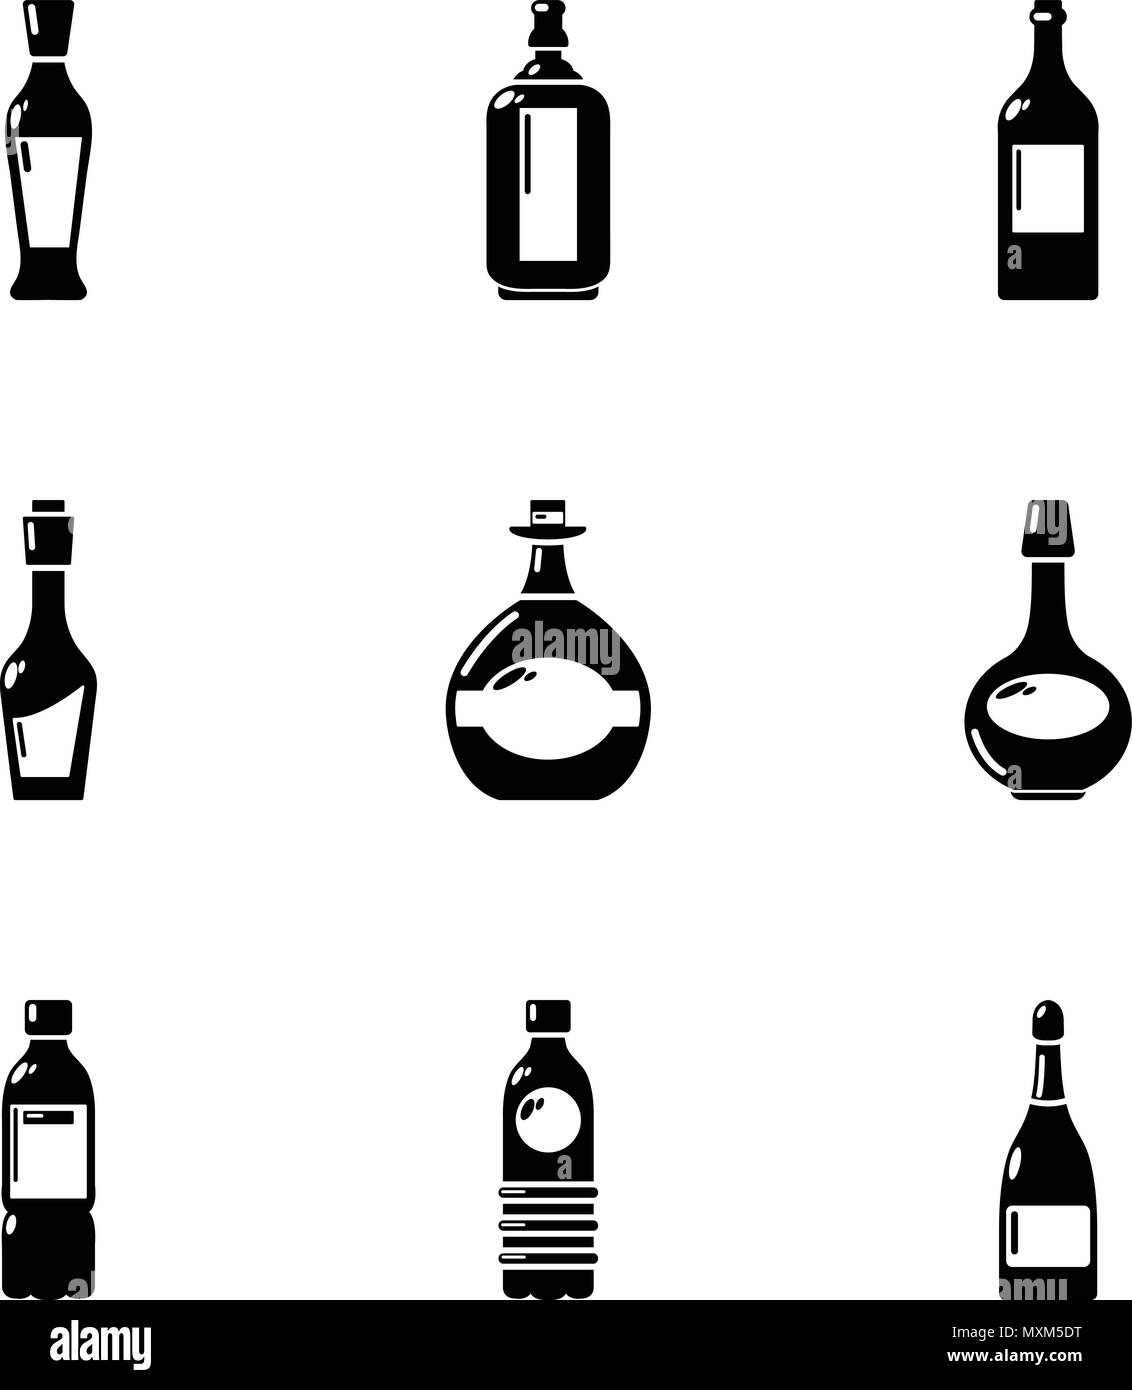 Alcohol retort icons set, simple style - Stock Image